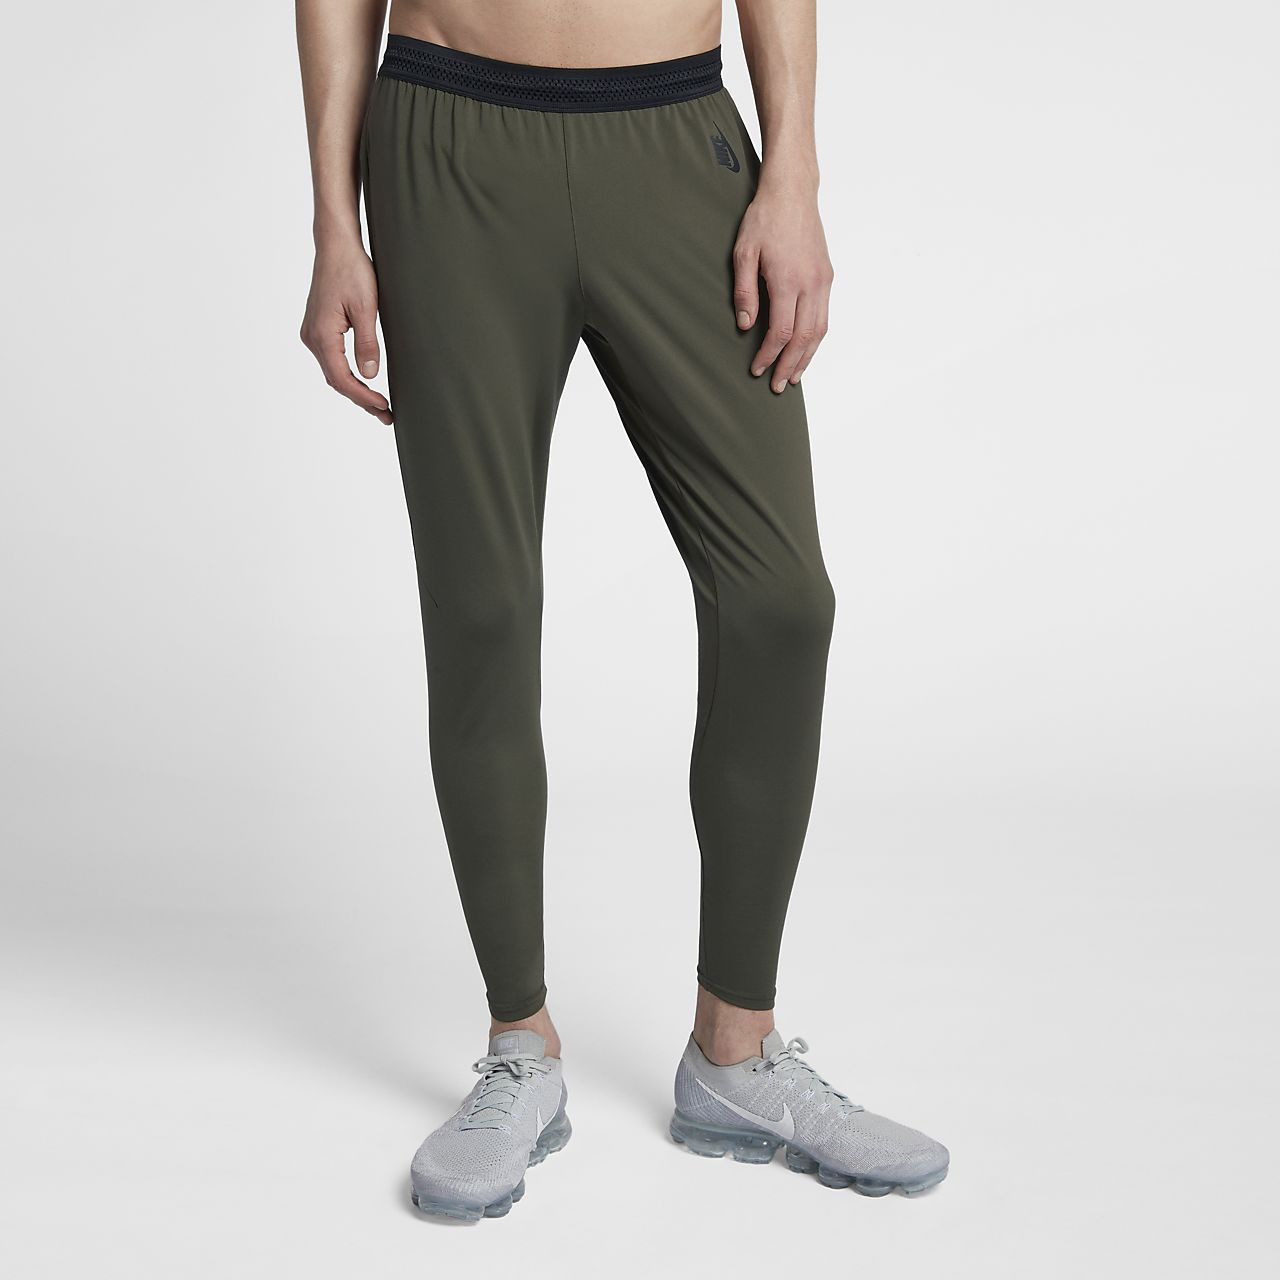 0d298f3a7e2e NikeLab Collection Performance Men s Trousers. Nike.com IN